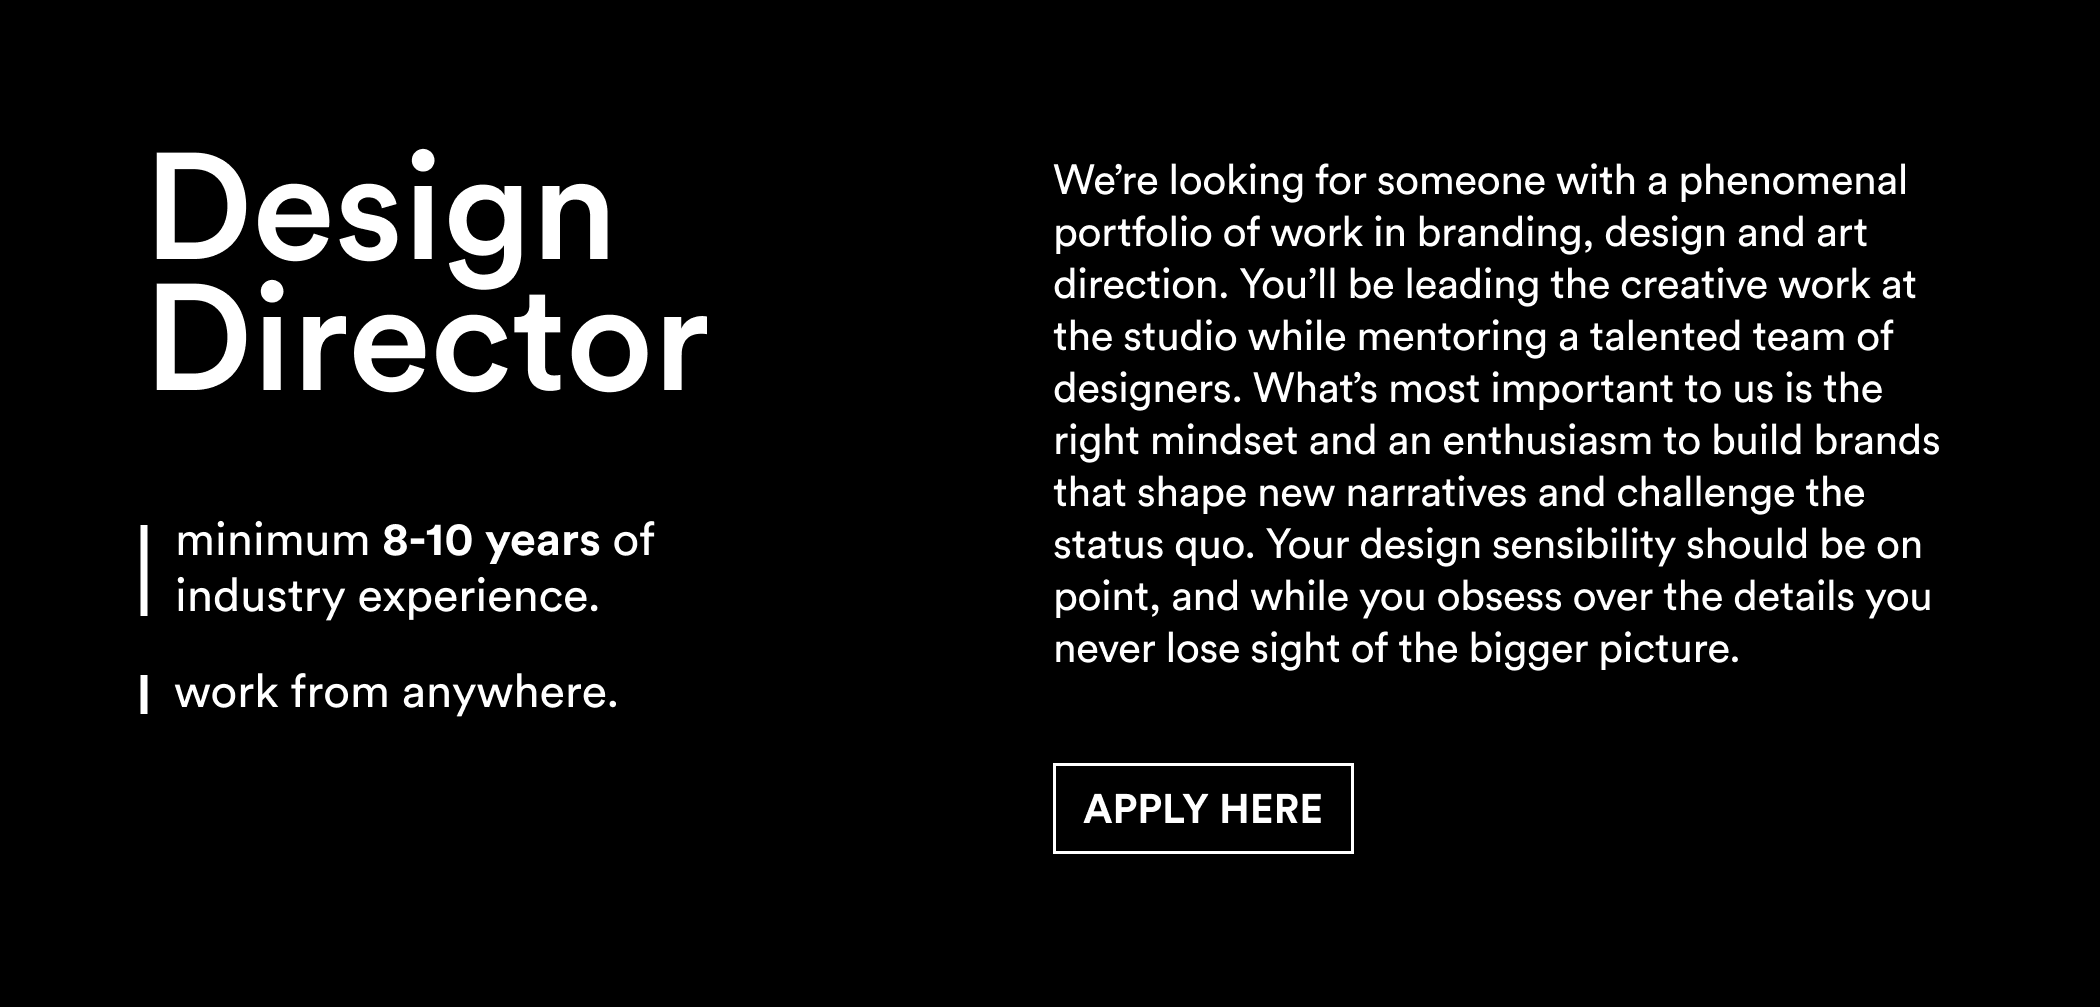 Linkedin – Design Director